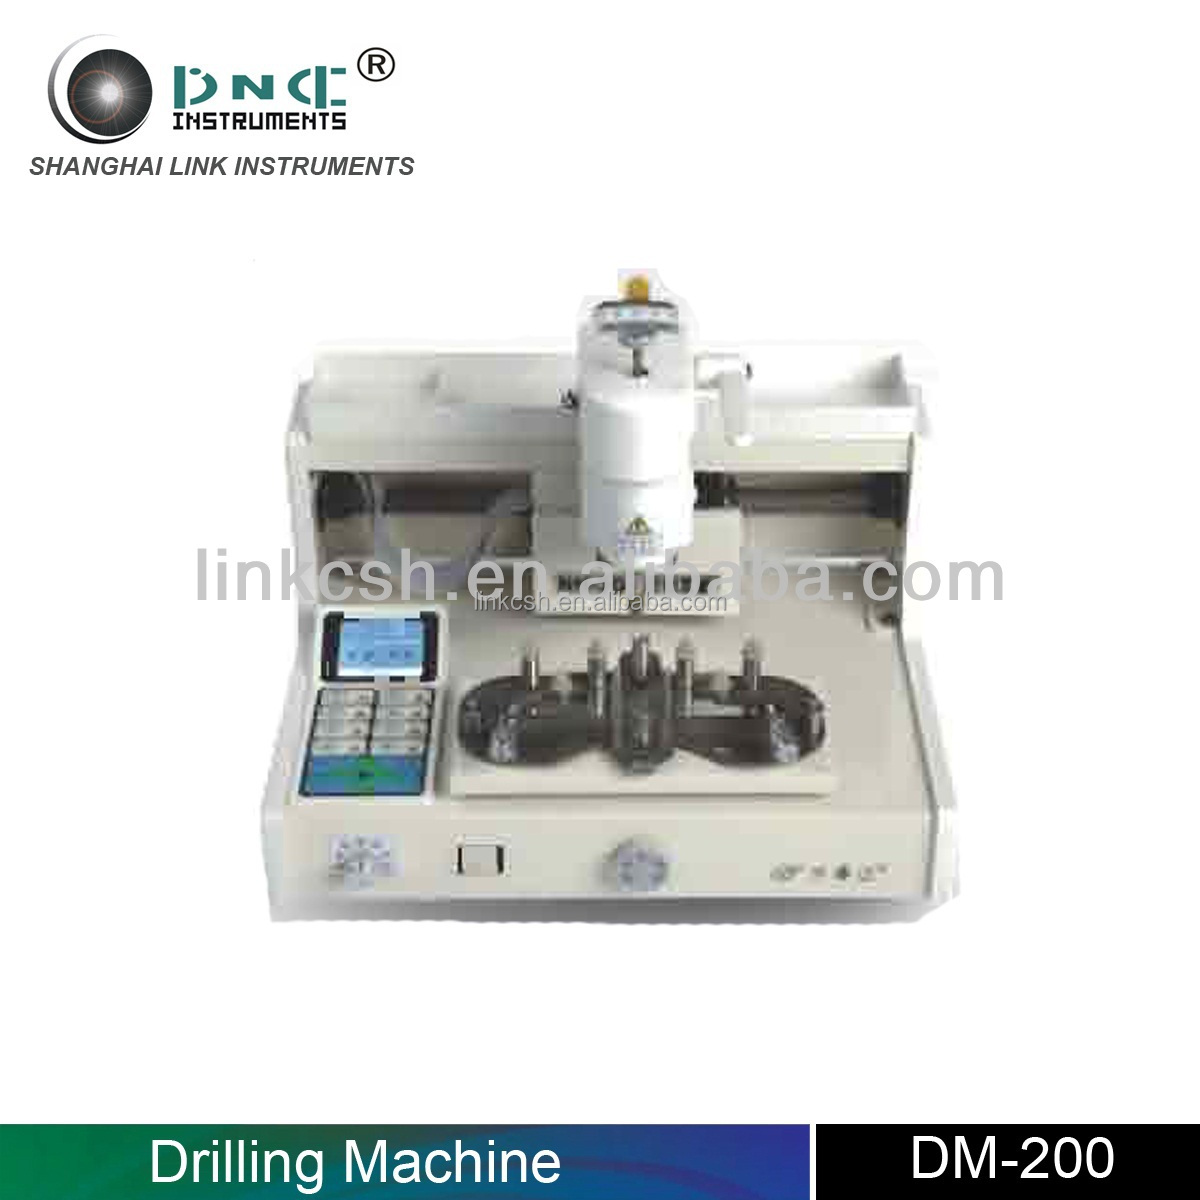 Optical Instrument bosch top sell DM-200 Digital drilling machine